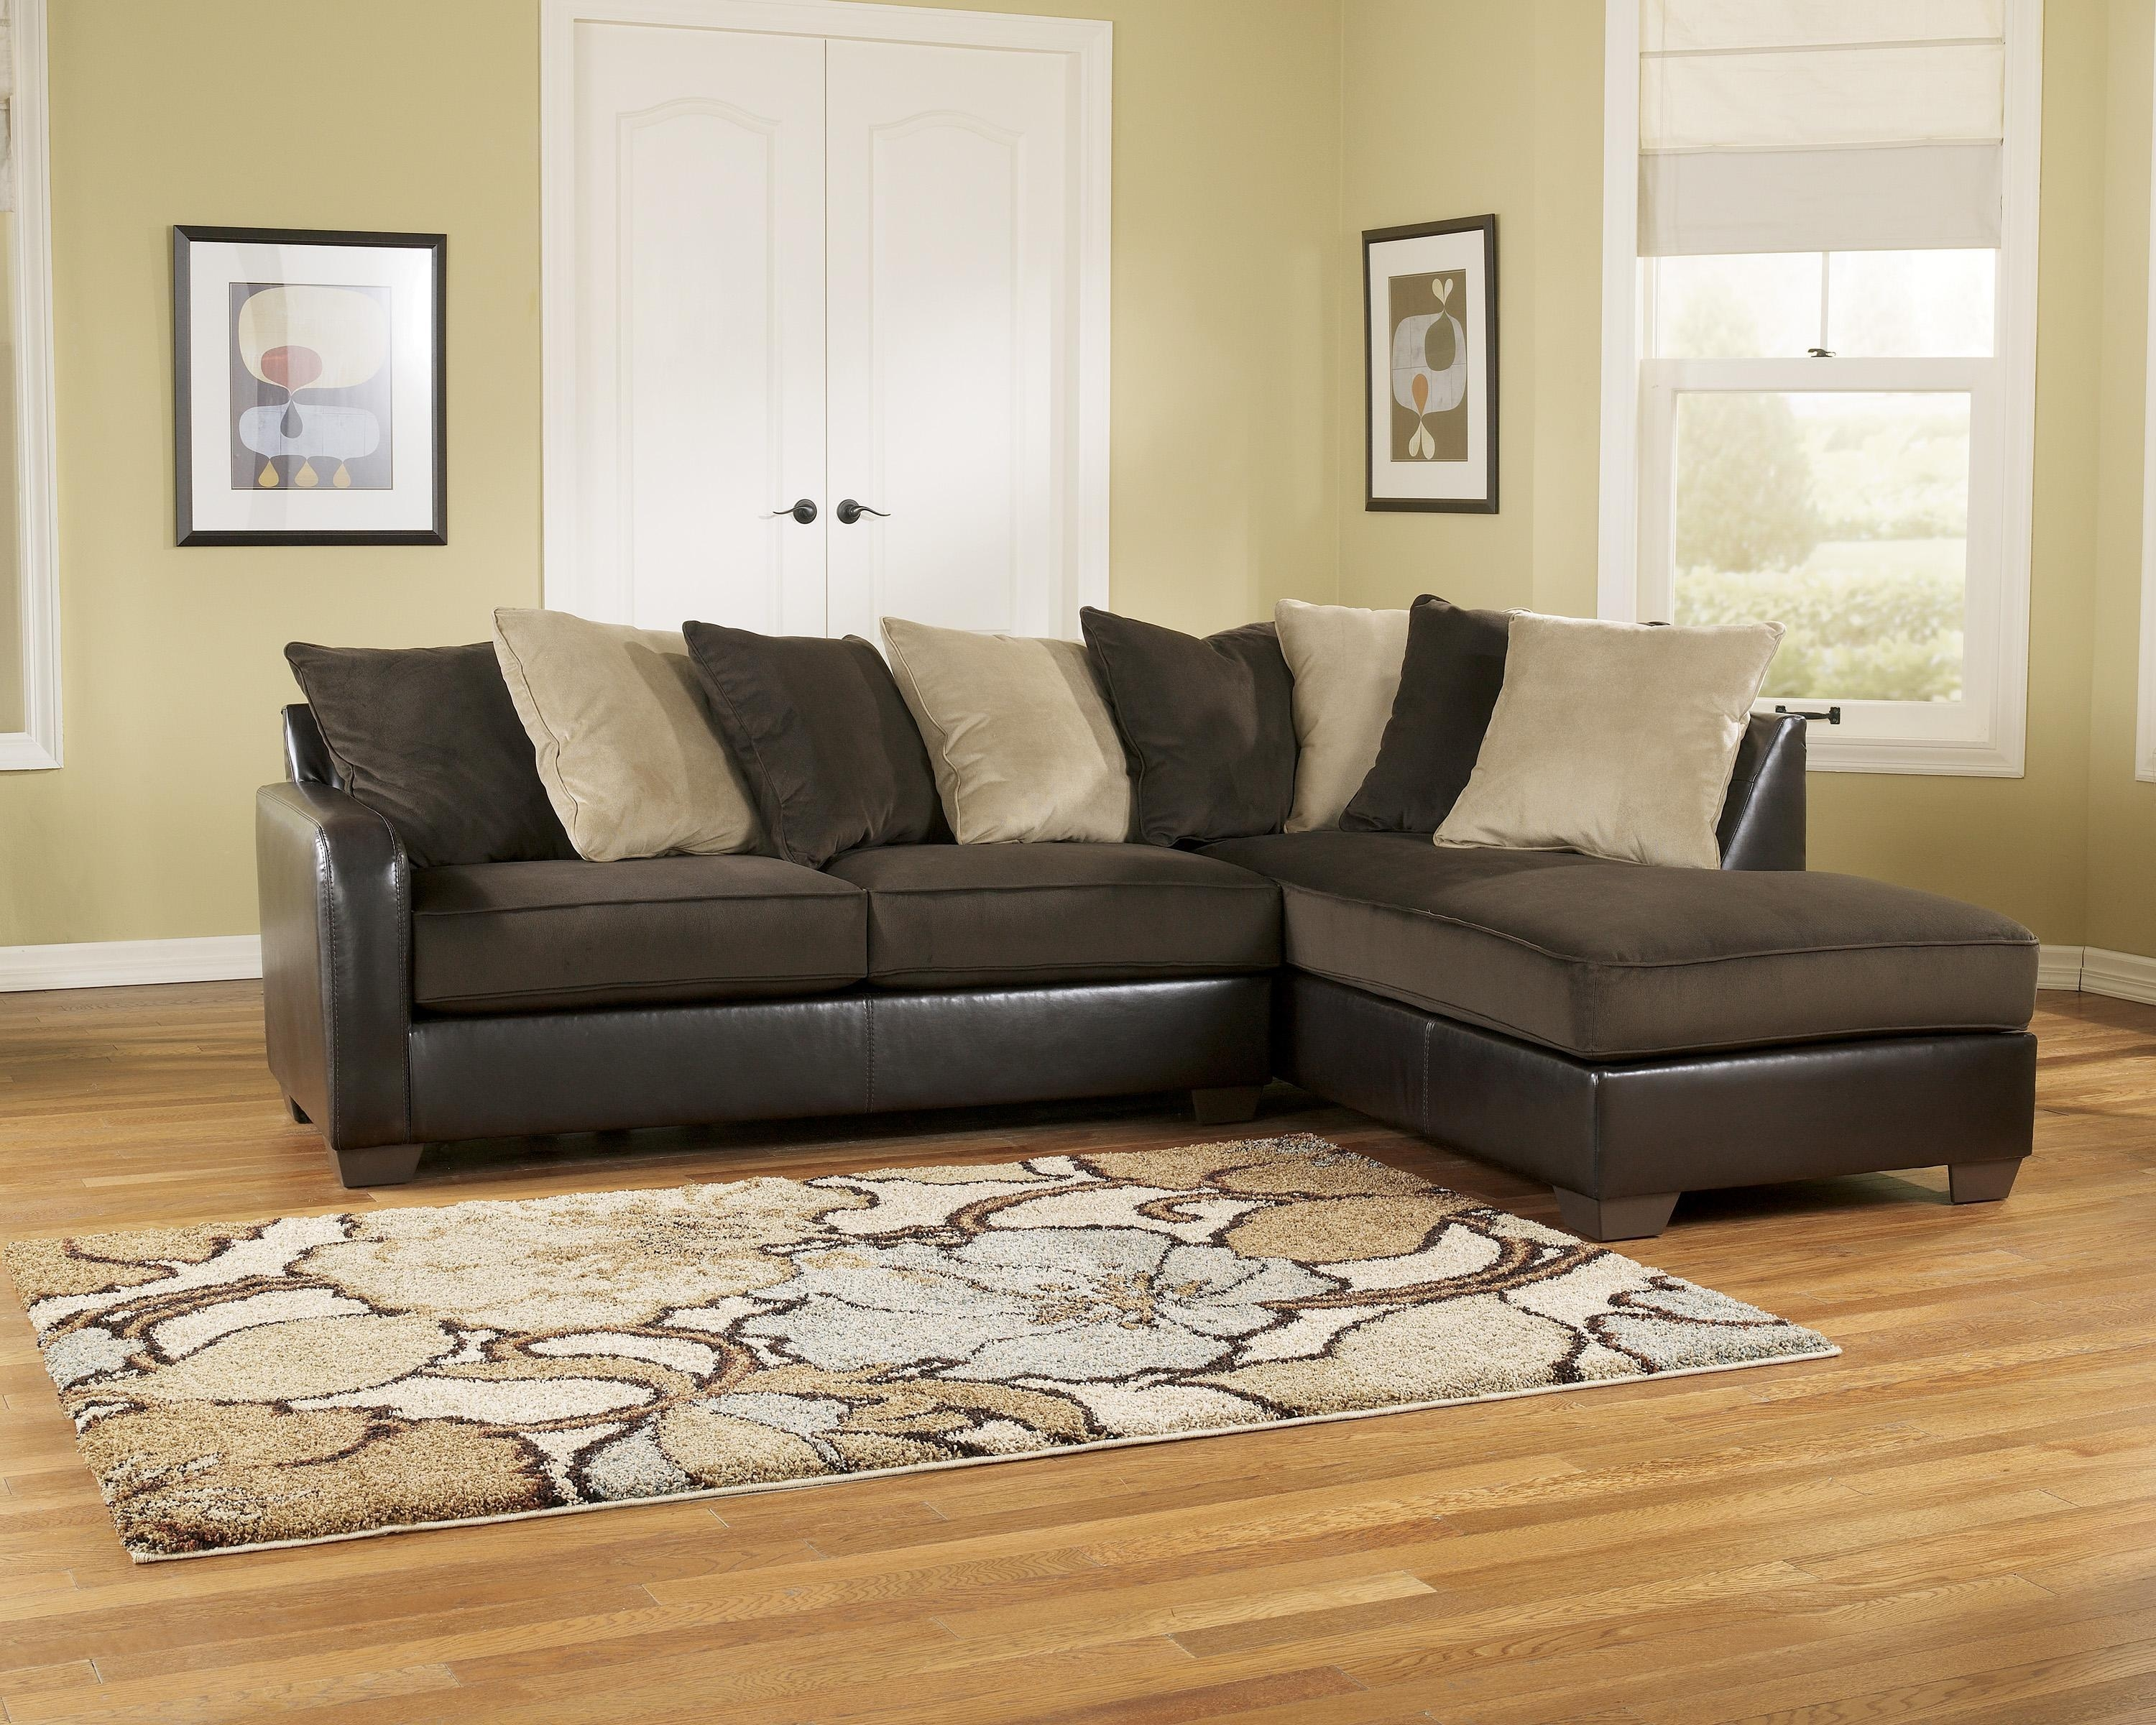 Featured Image of Ashley Furniture Corduroy Sectional Sofas